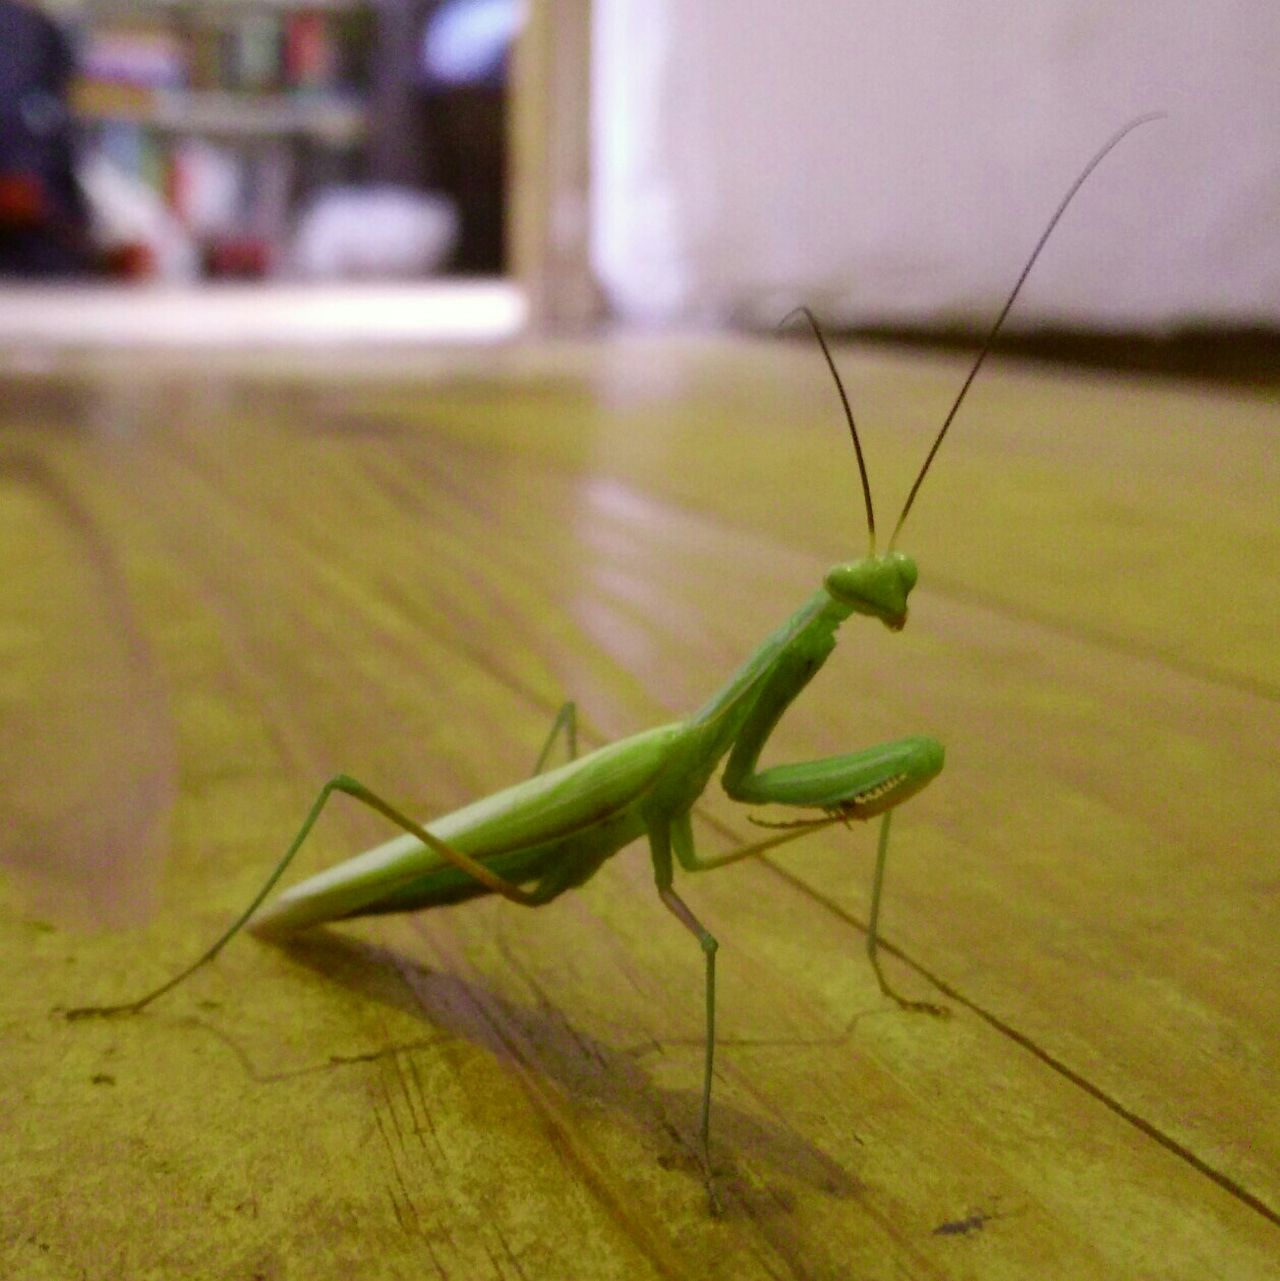 Praying Mantis Alien Visitor Green Macro Photography